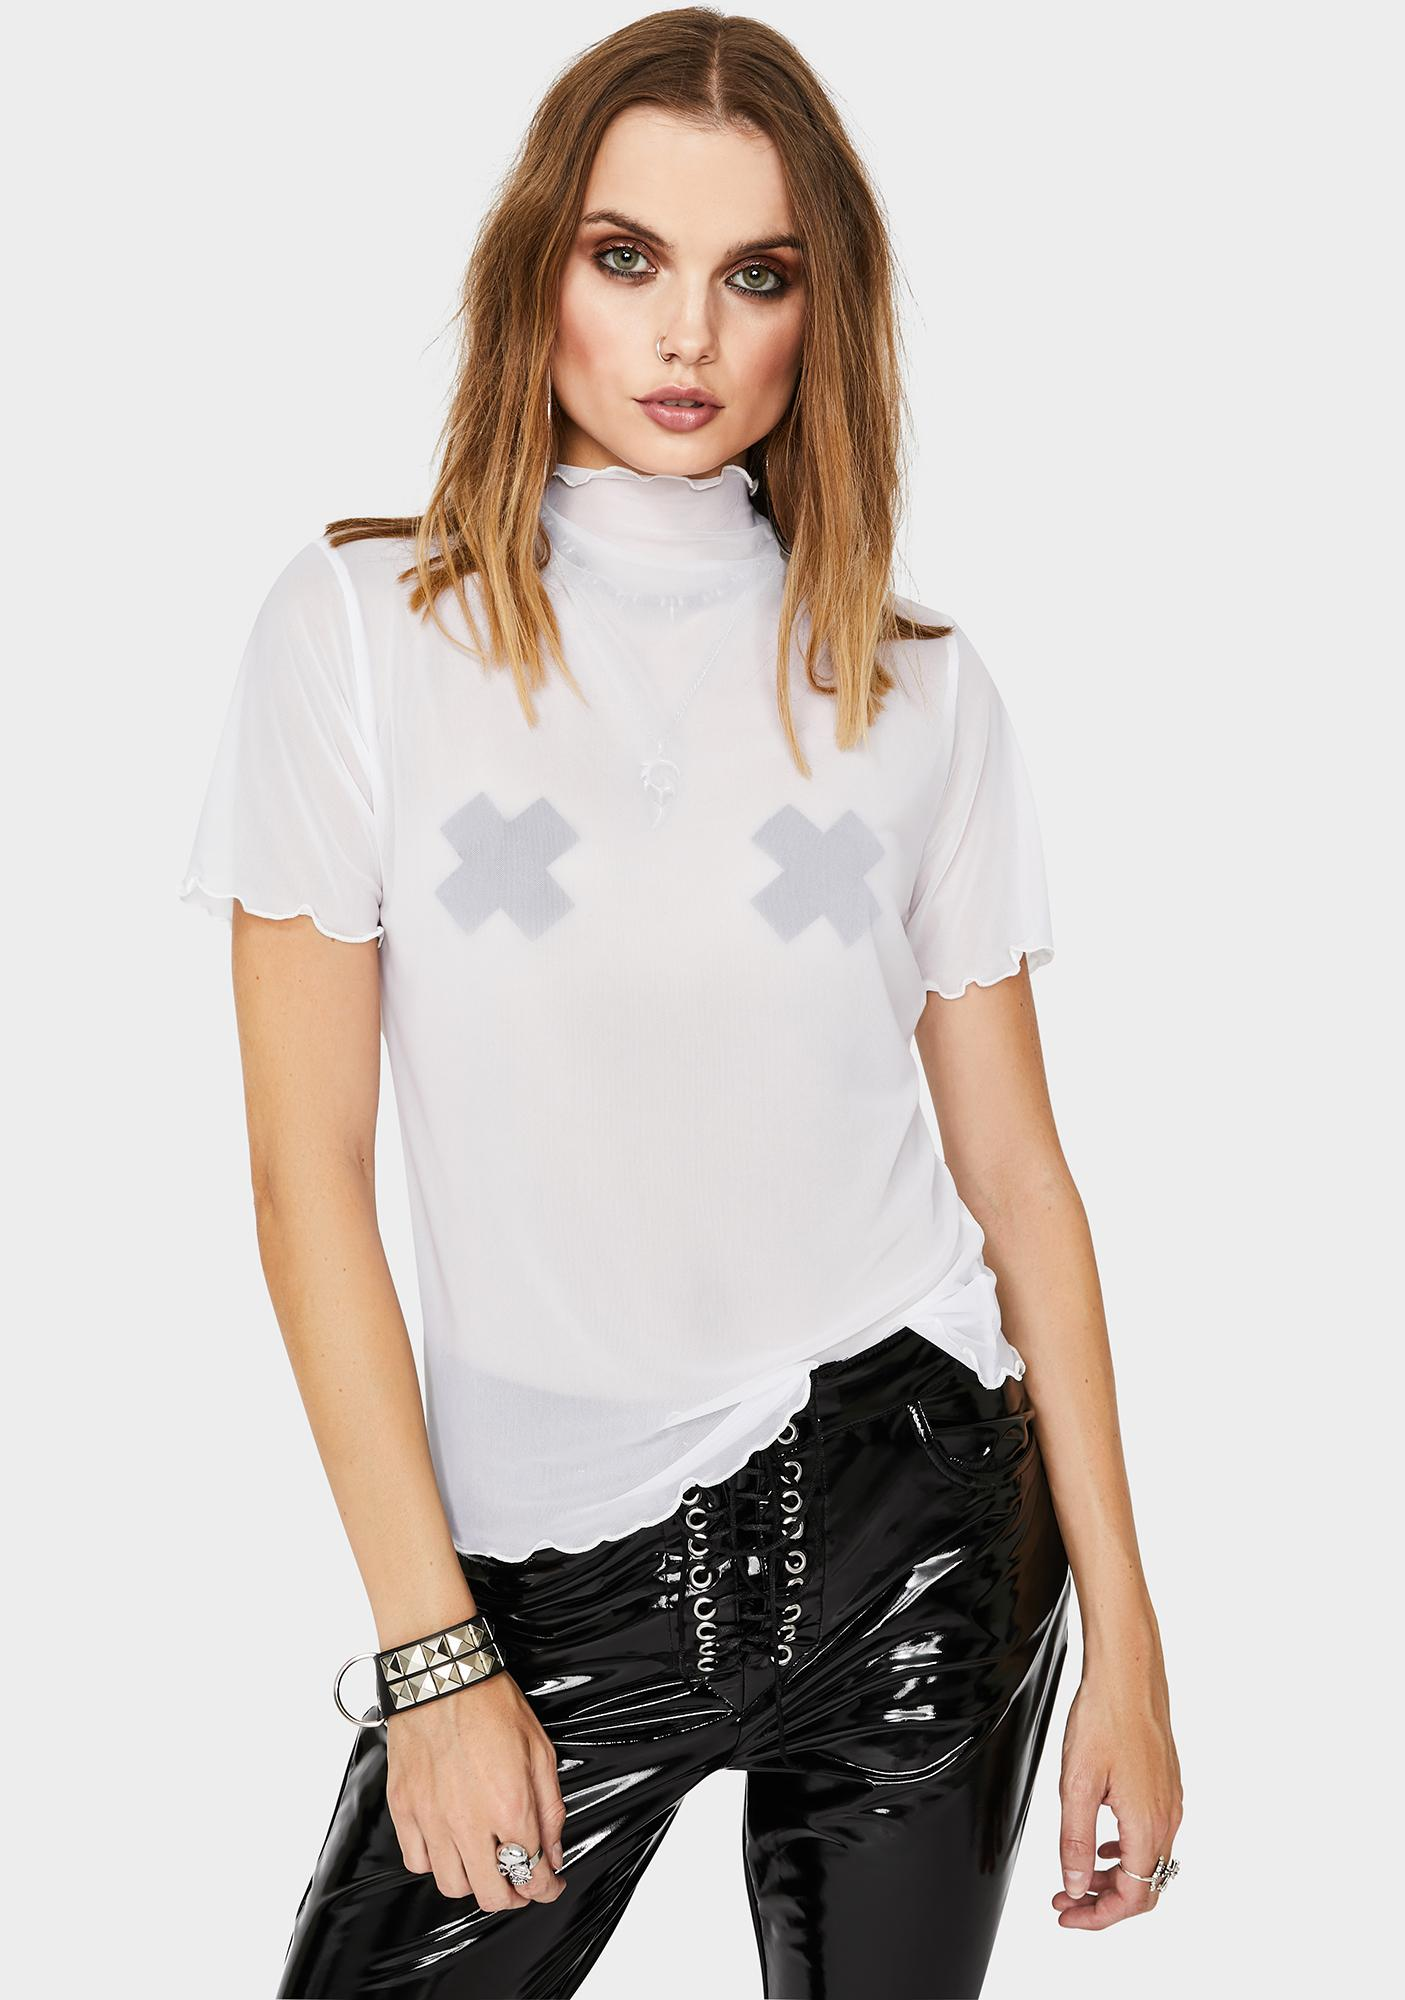 Chill Lil Preview Sheer Top